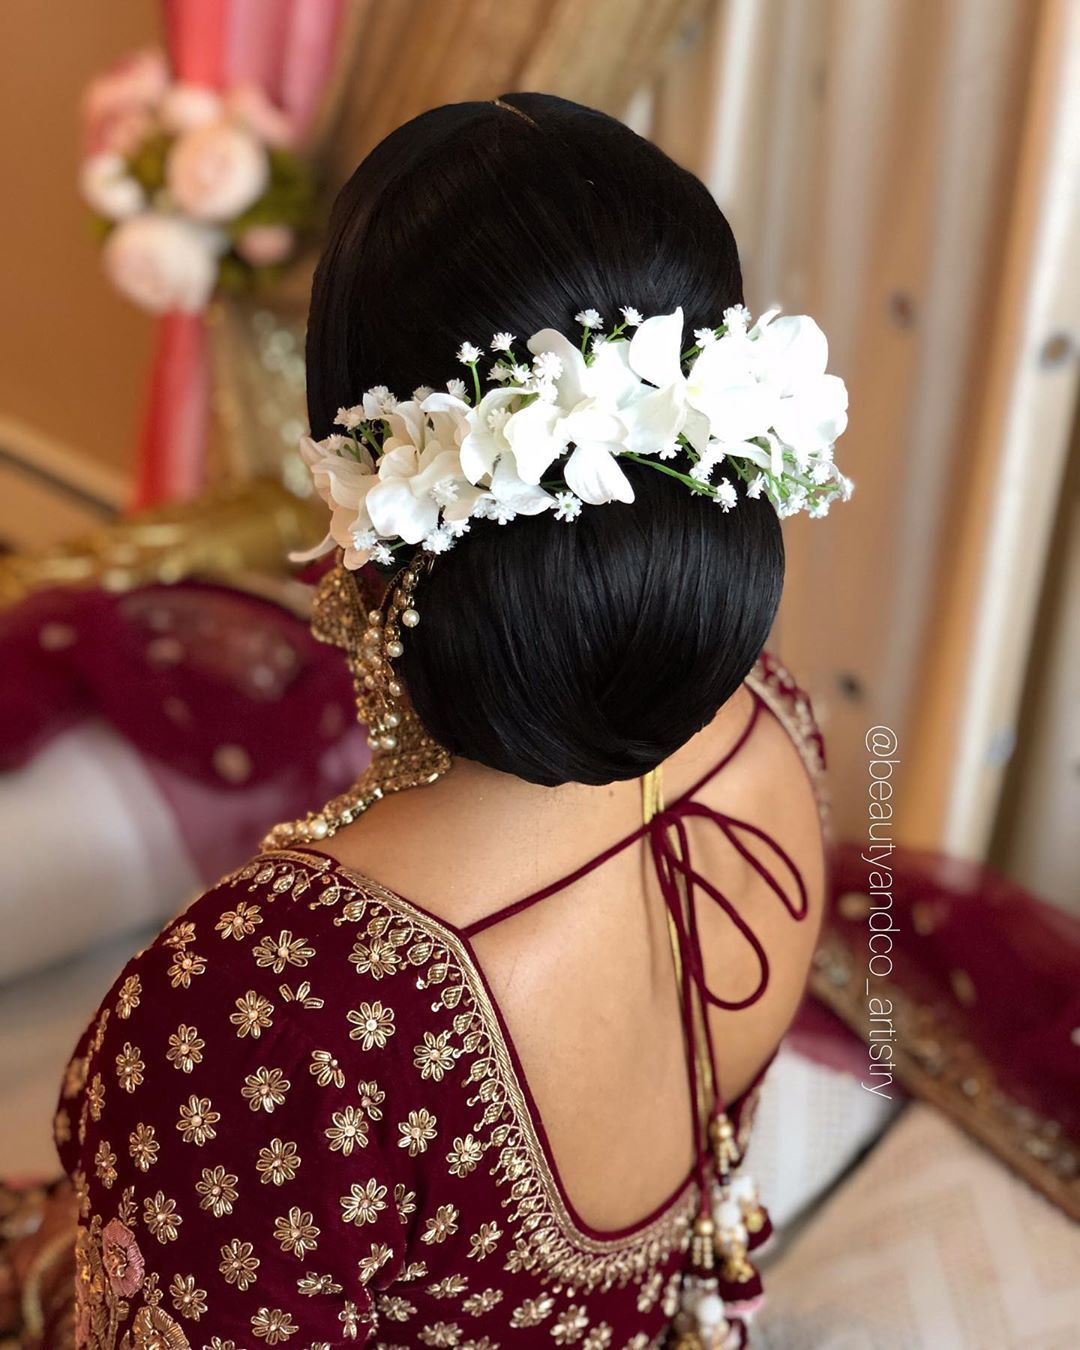 Morning Bridal Bun Adorned With Sukisflowers Silk Orchids Hair Styled Using The Bombayhair X Dressyourface Flat Iron And At Th Bridal Bun Silk Orchids Hair